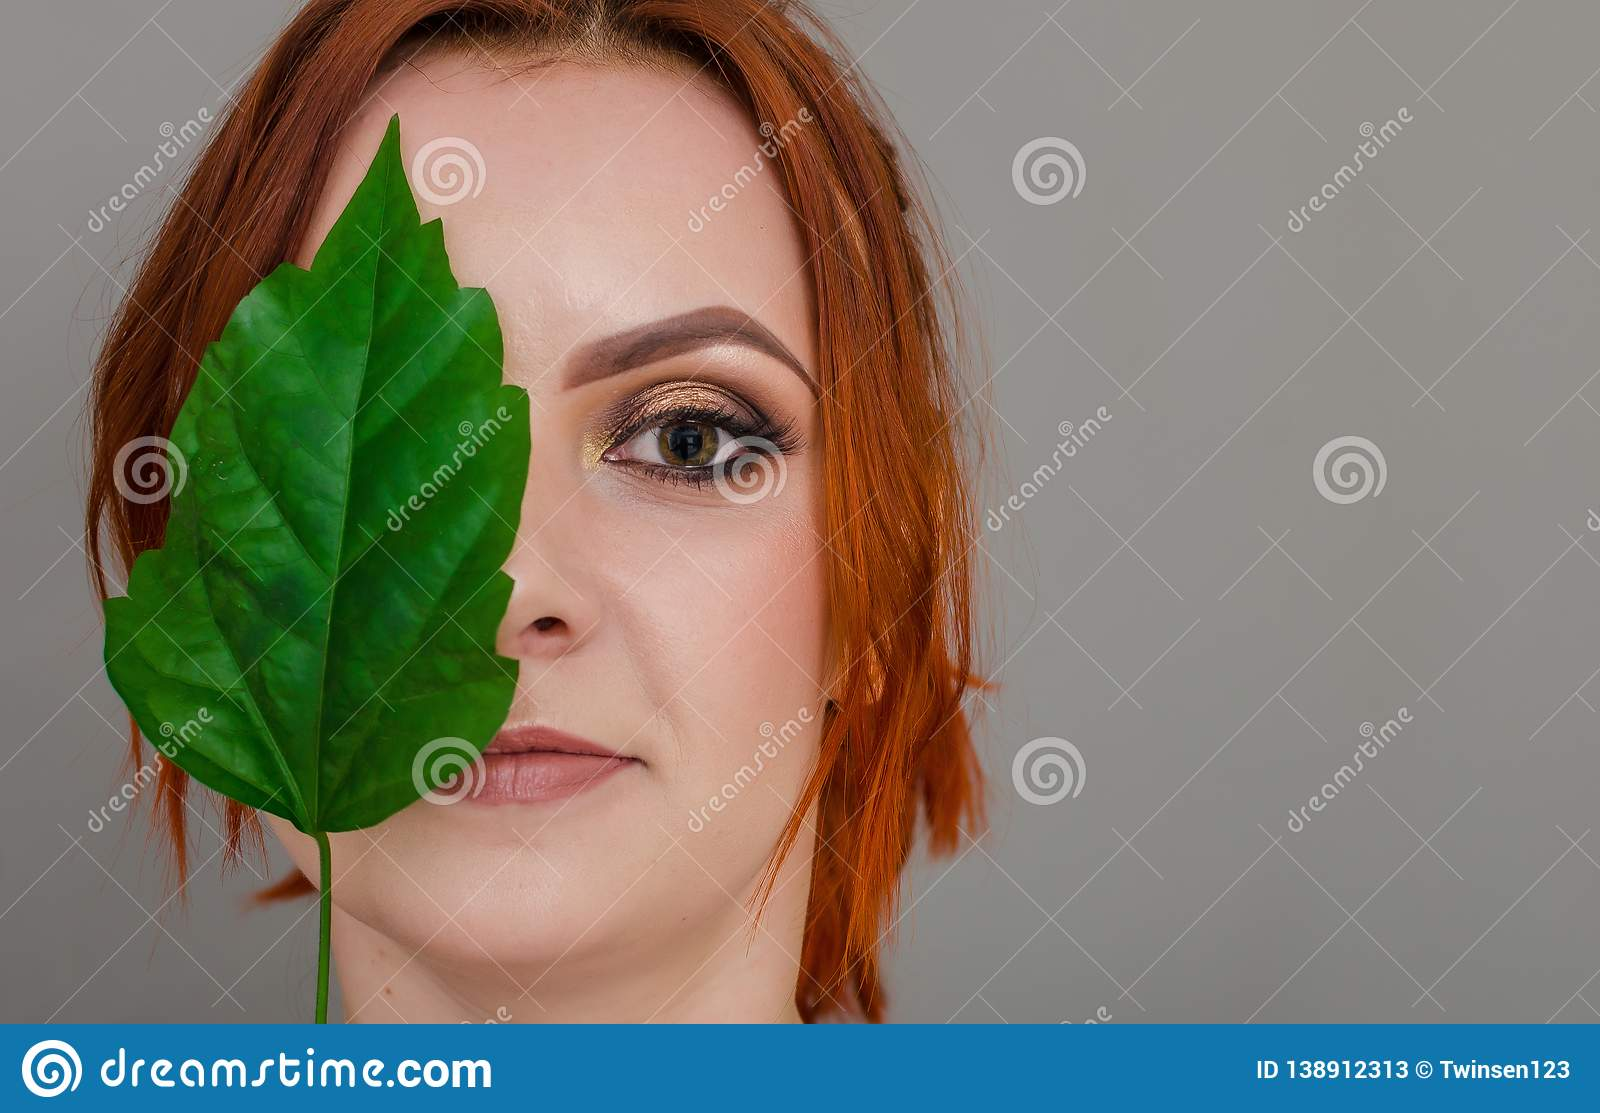 Red haired women